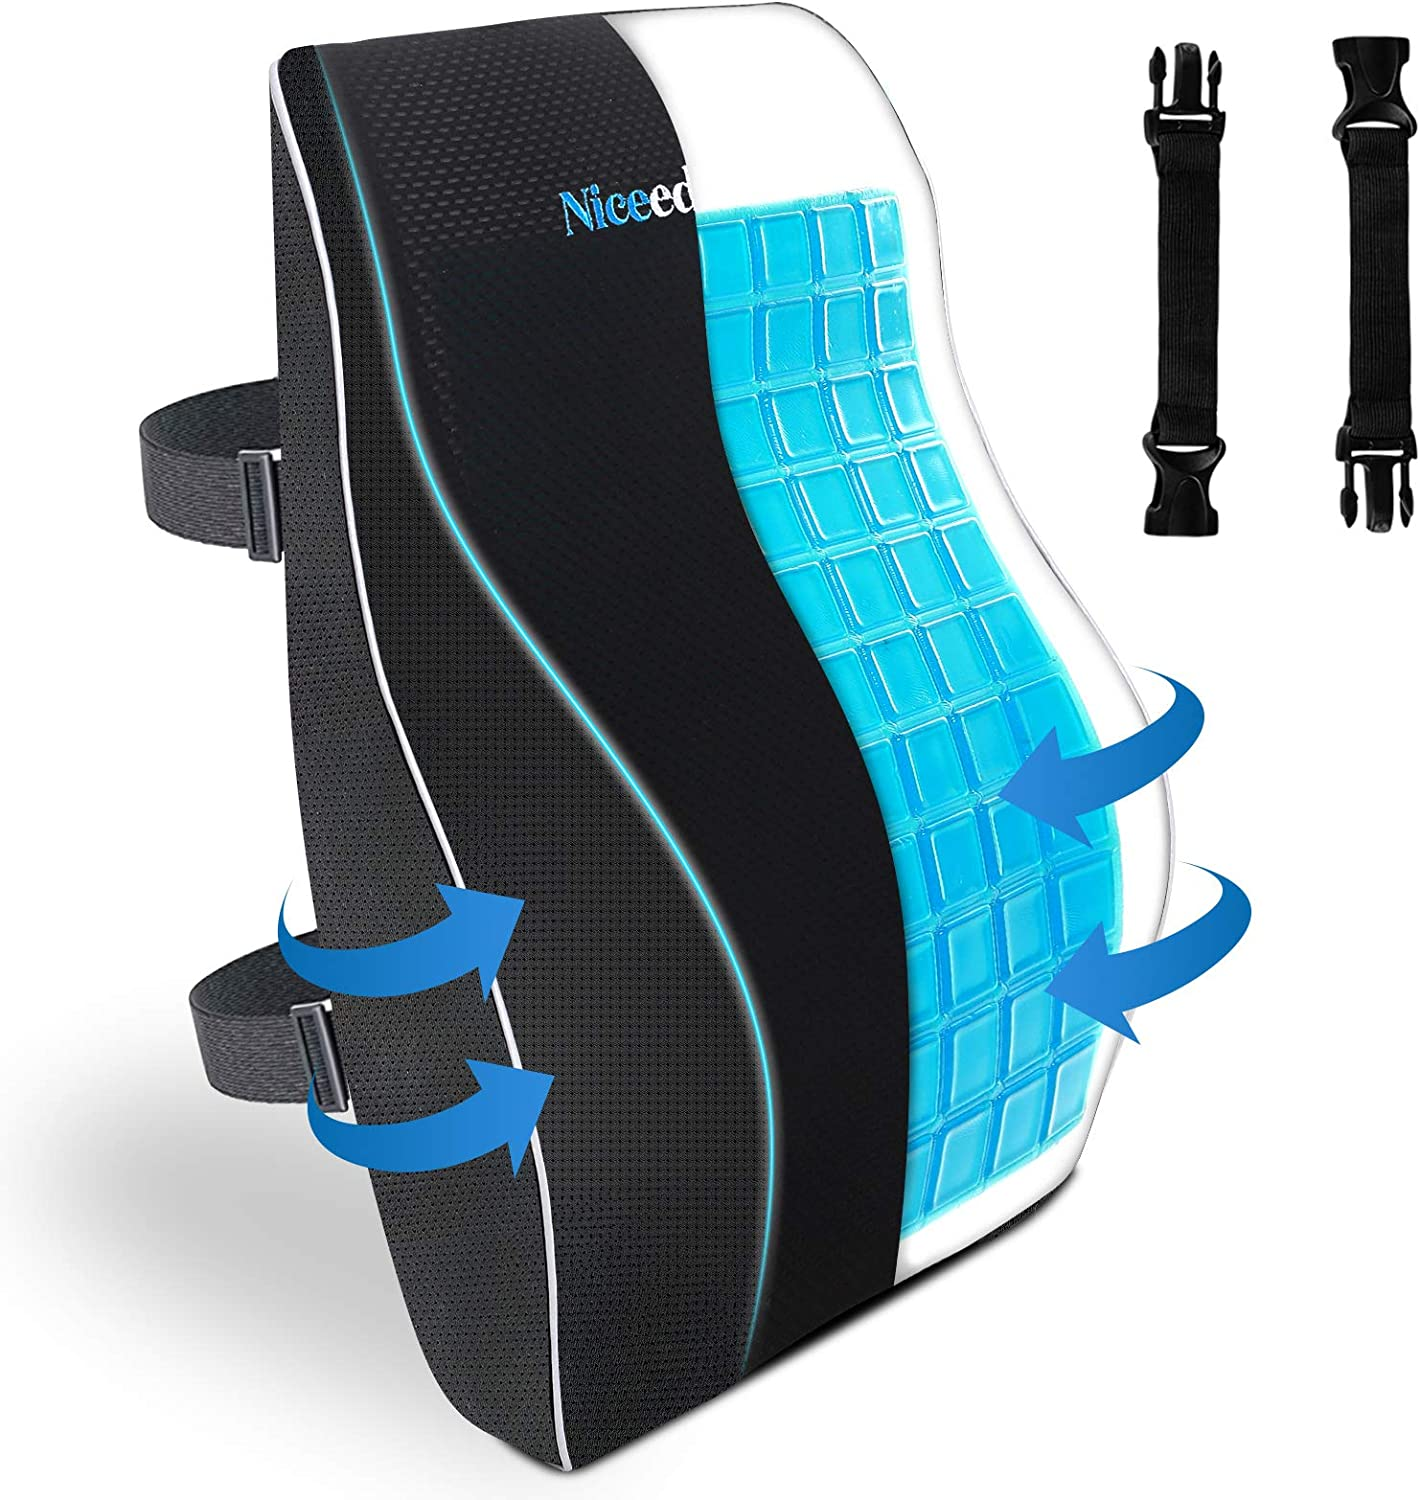 Cooling Gel Lumbar Support Pillow for Office Chair 3D Updated Memory Foam Car Lumbar Pillow for Back Support Cooling Back Pillow for Chairs Lower Back Pain Relief Back Rest for Wheelchair Gaming Chair